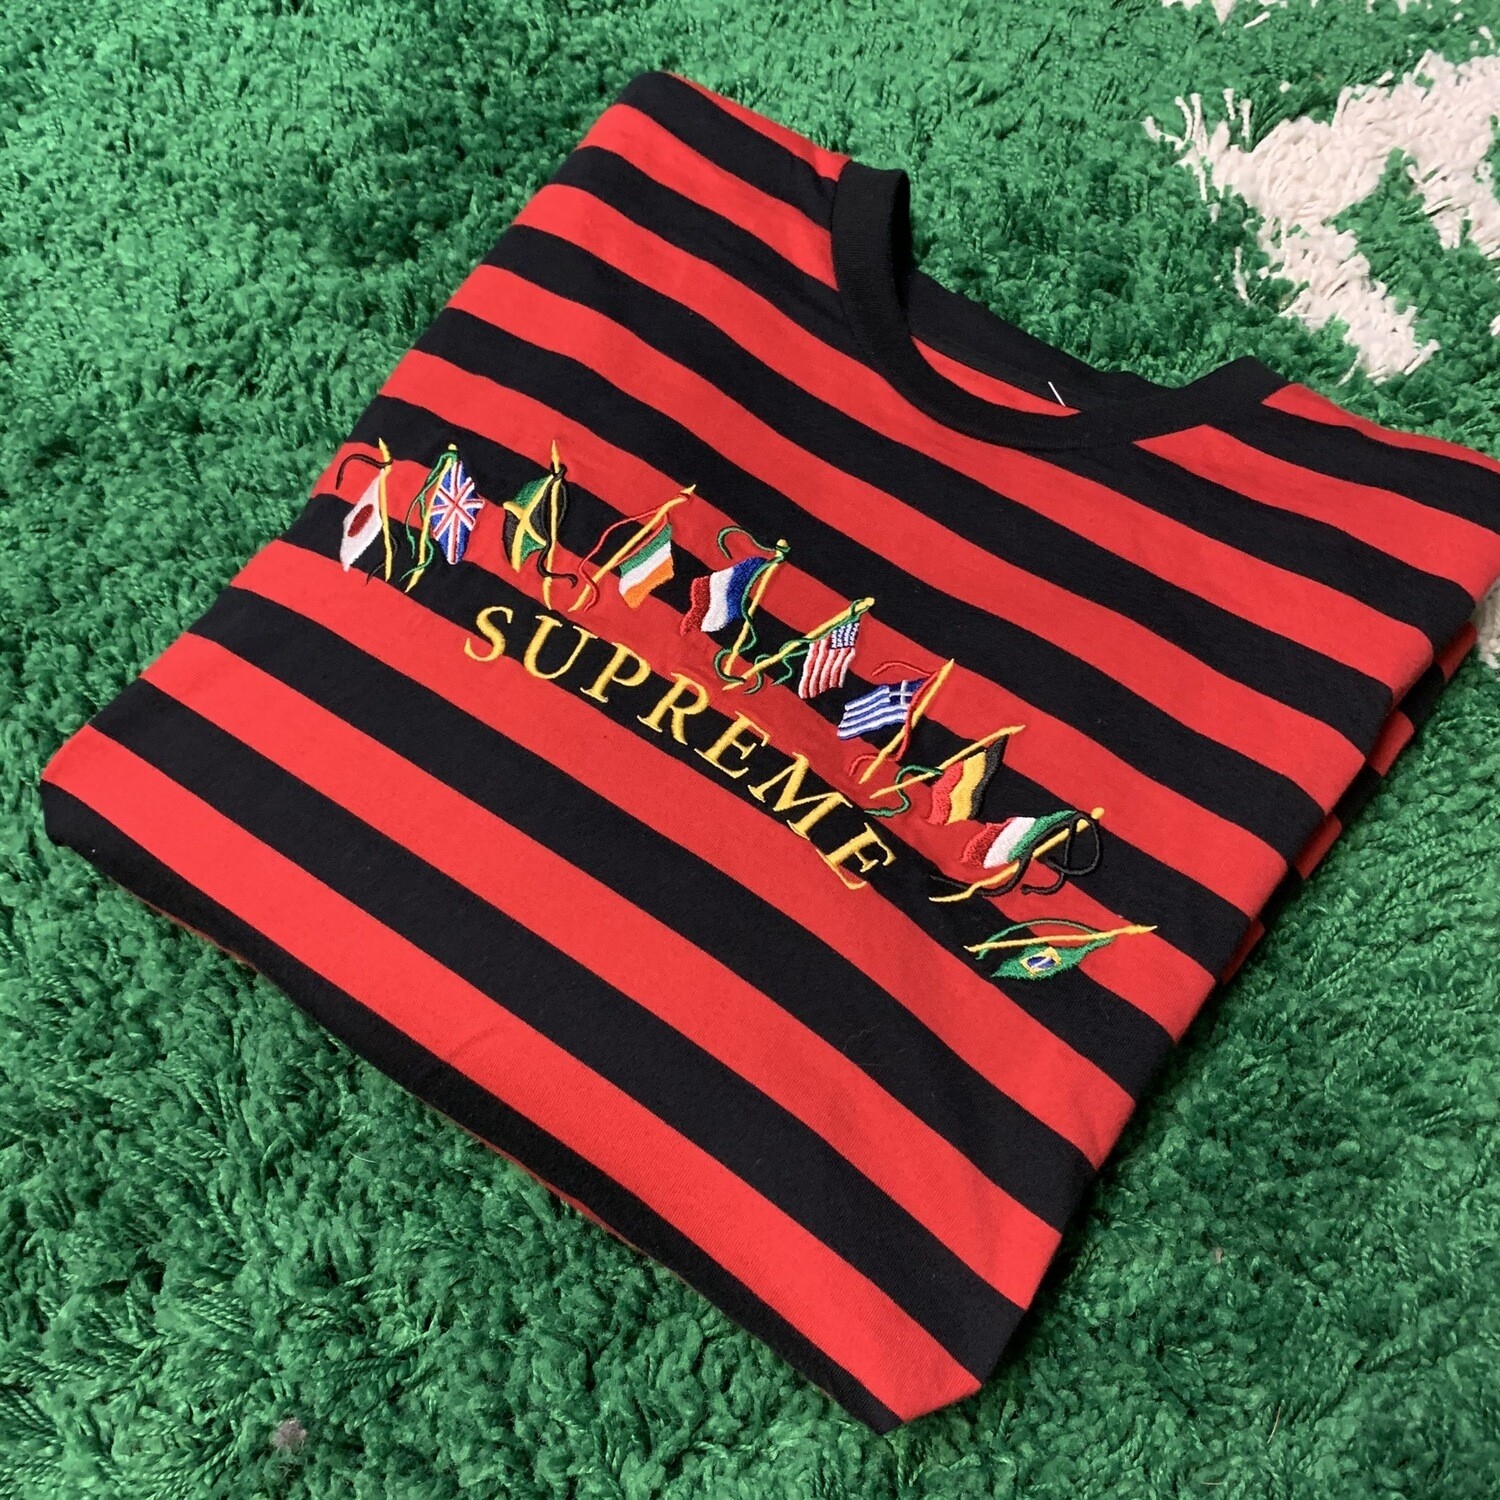 Supreme Flags L/S Top Red Stripe Size Large